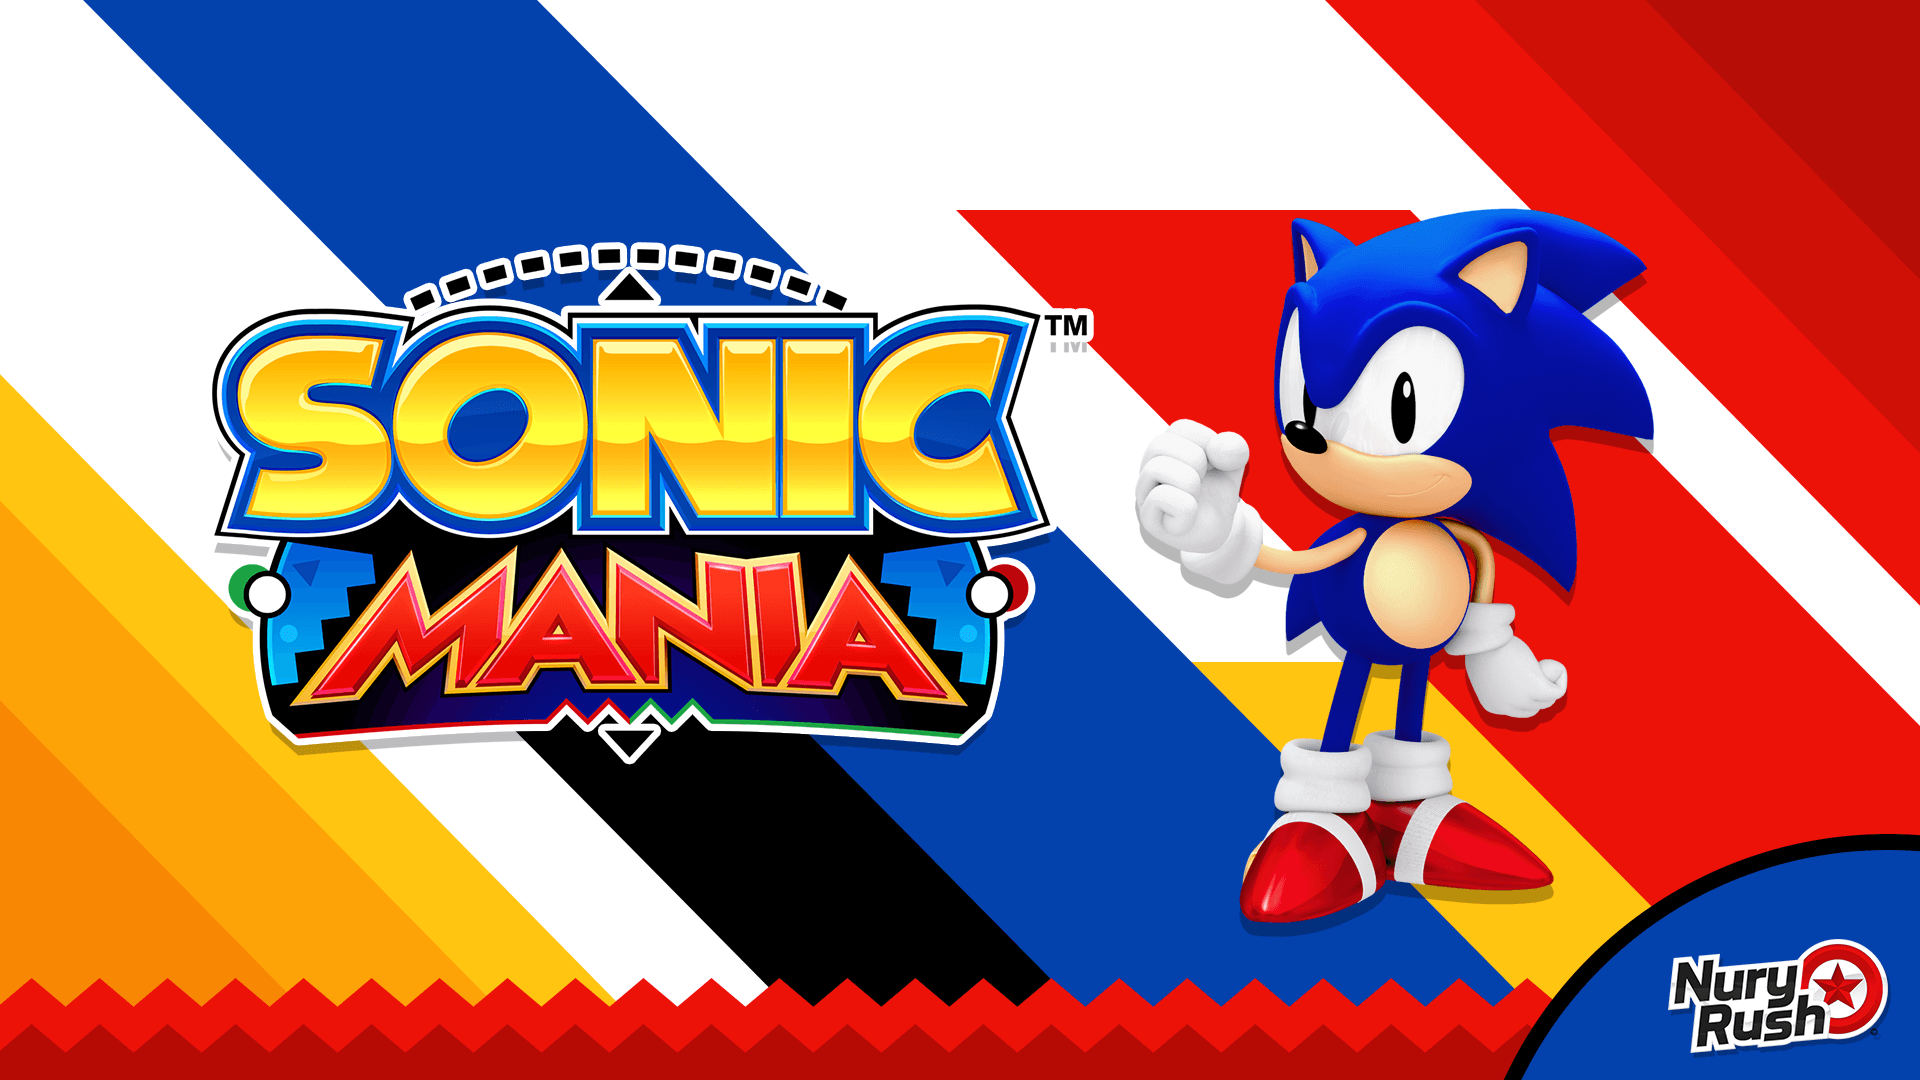 Sonic Mania Full HD Wallpapers and Backgrounds Image